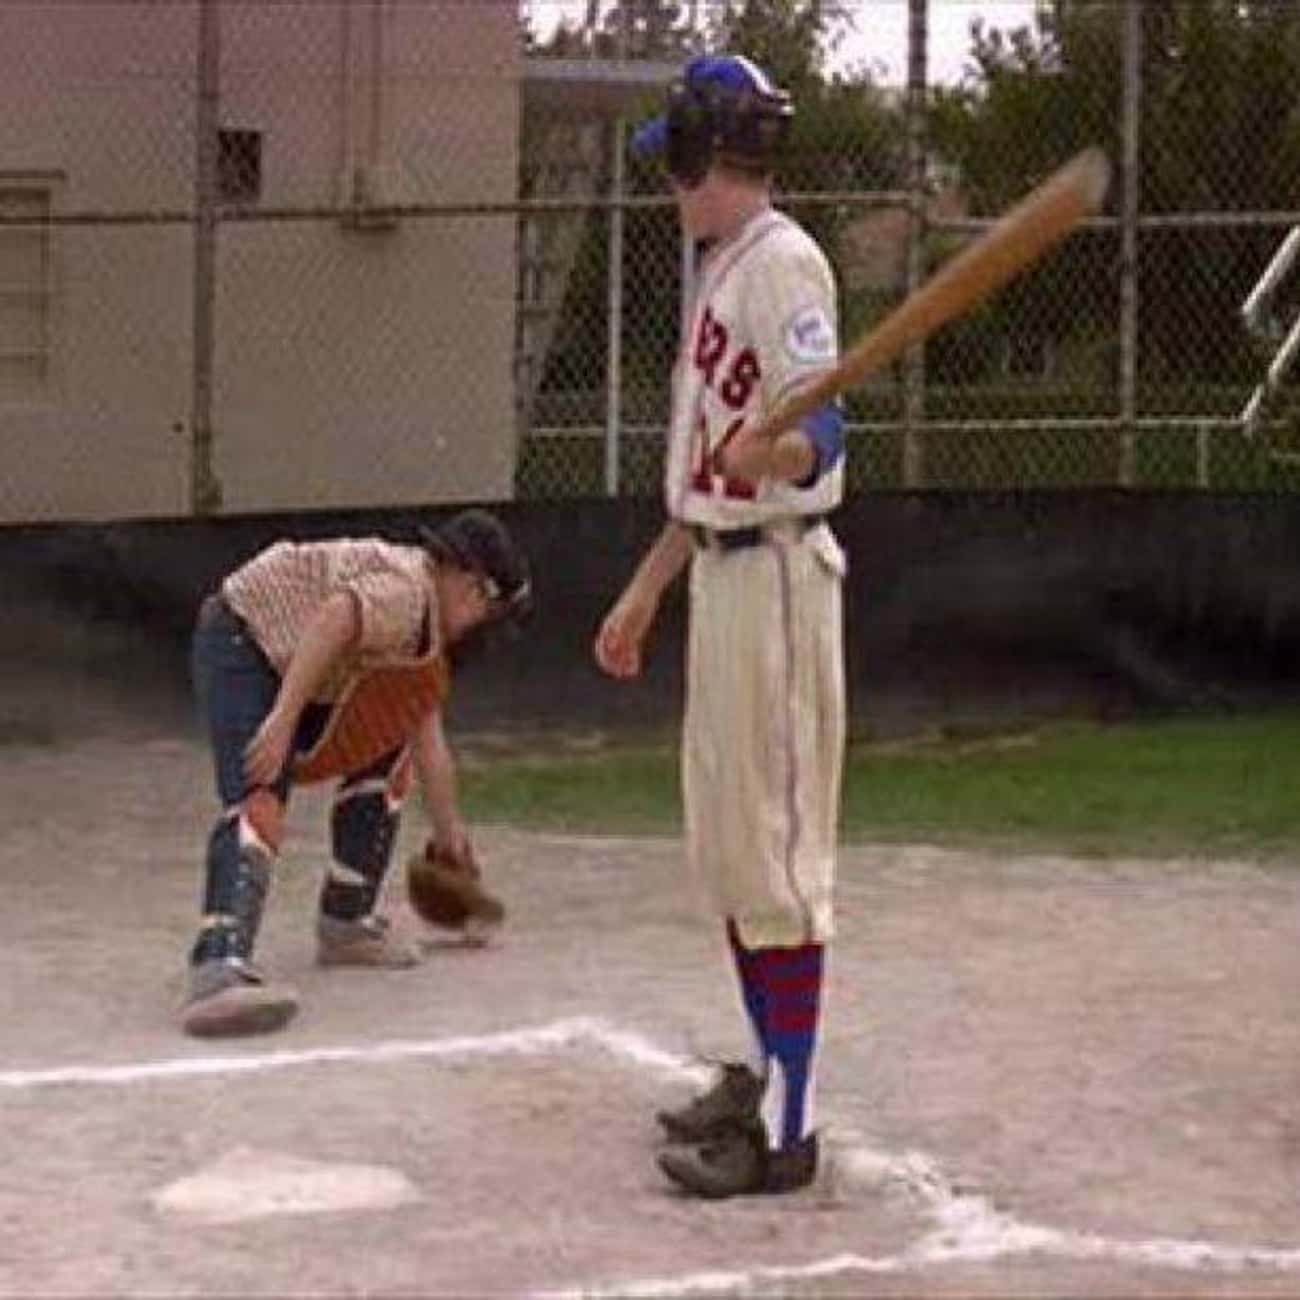 Friendly Conversation is listed (or ranked) 1 on the list The Best Quotes From 'The Sandlot'